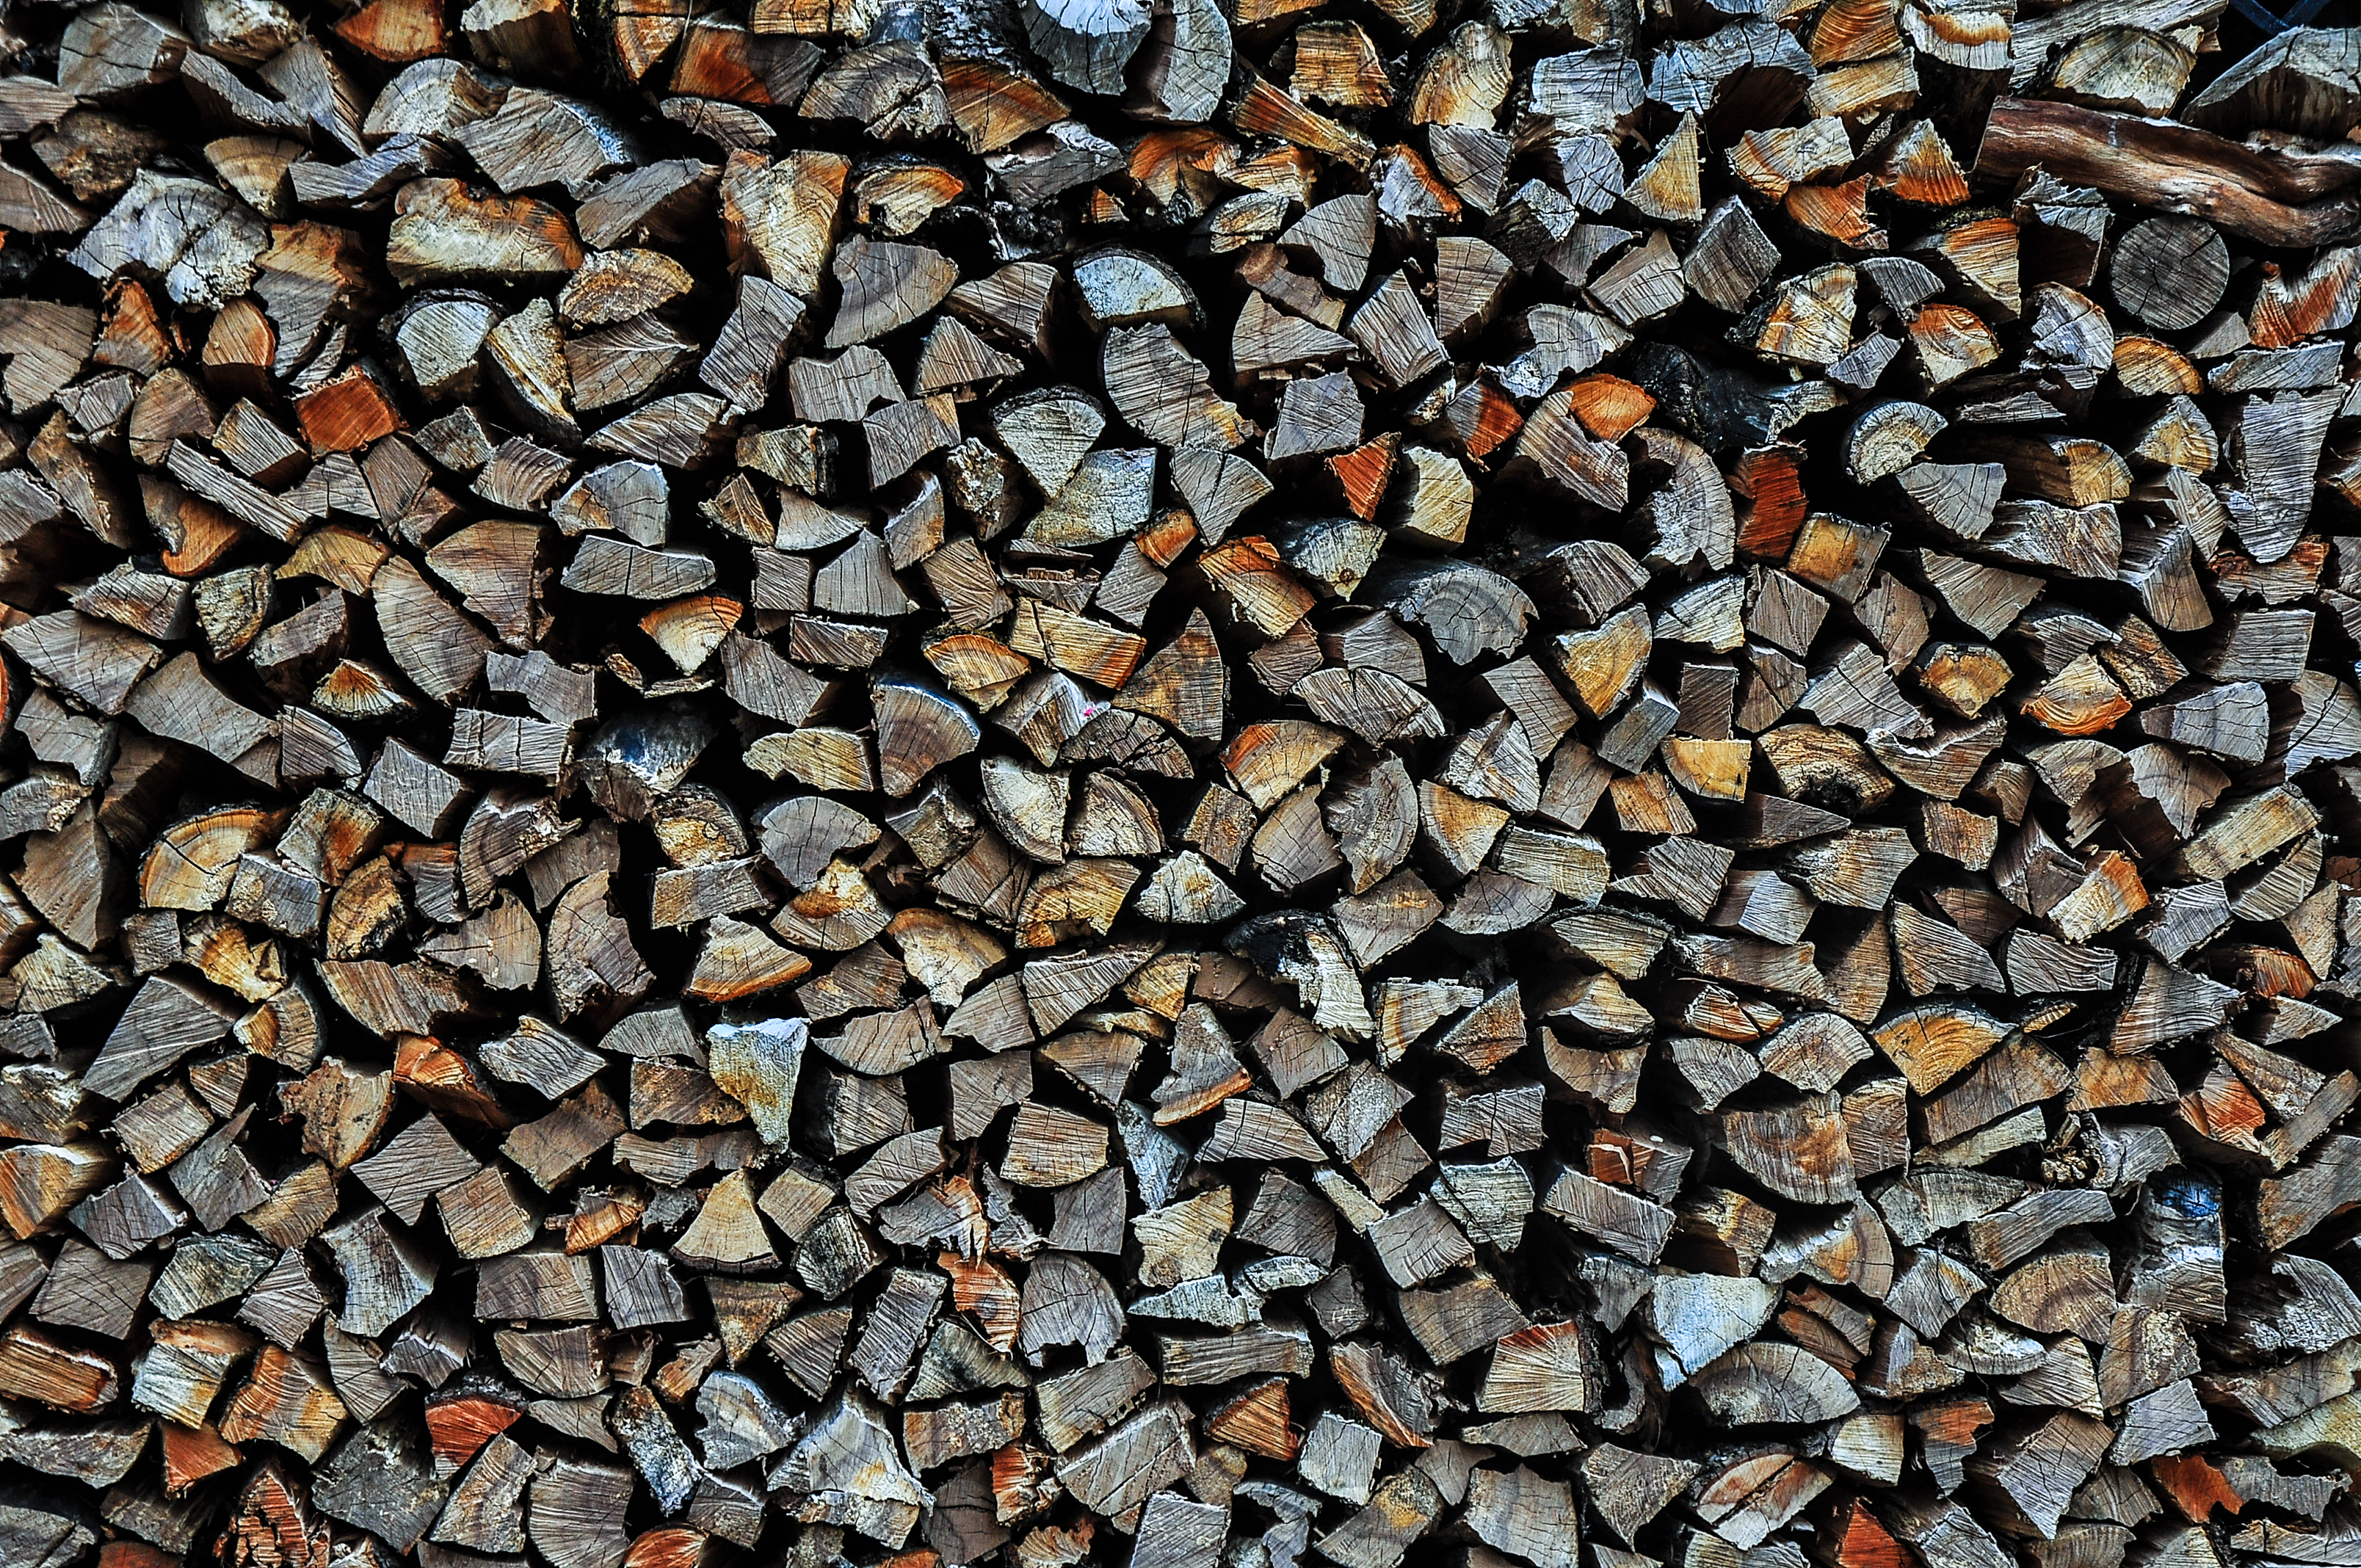 Pile Of woods, Wood, Pile, Logs, Bunch, HQ Photo